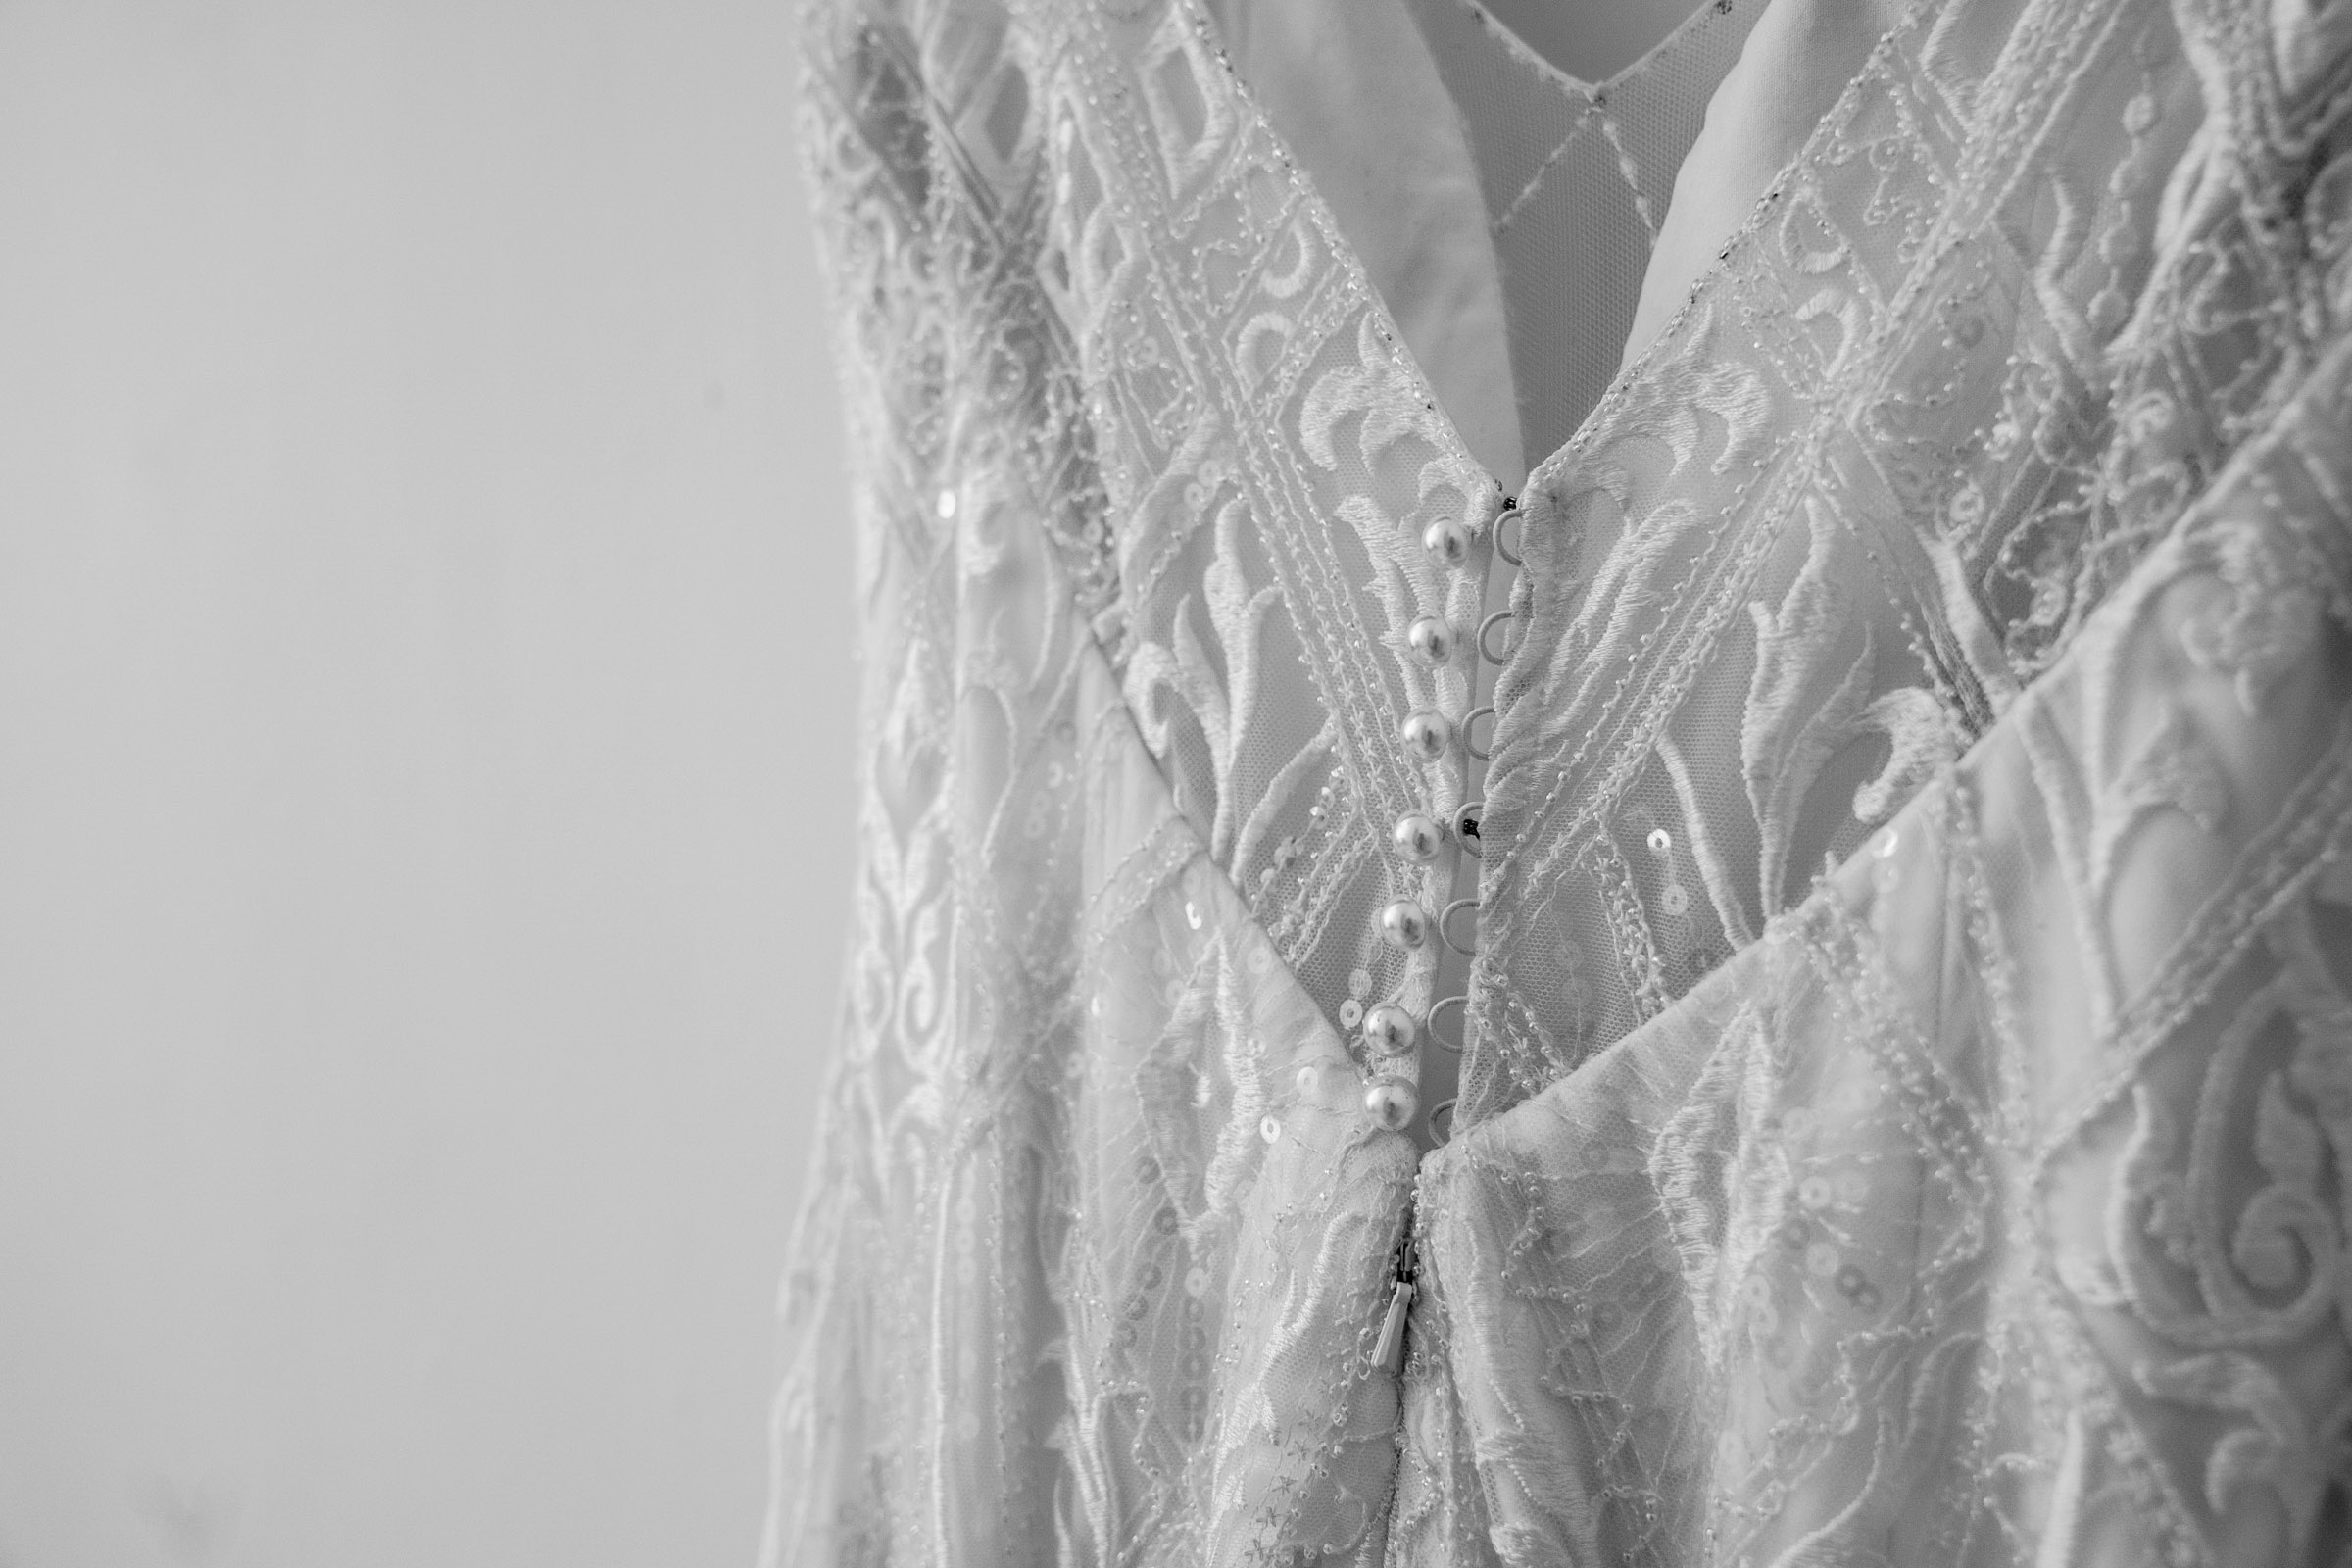 wedding dress details, black and white